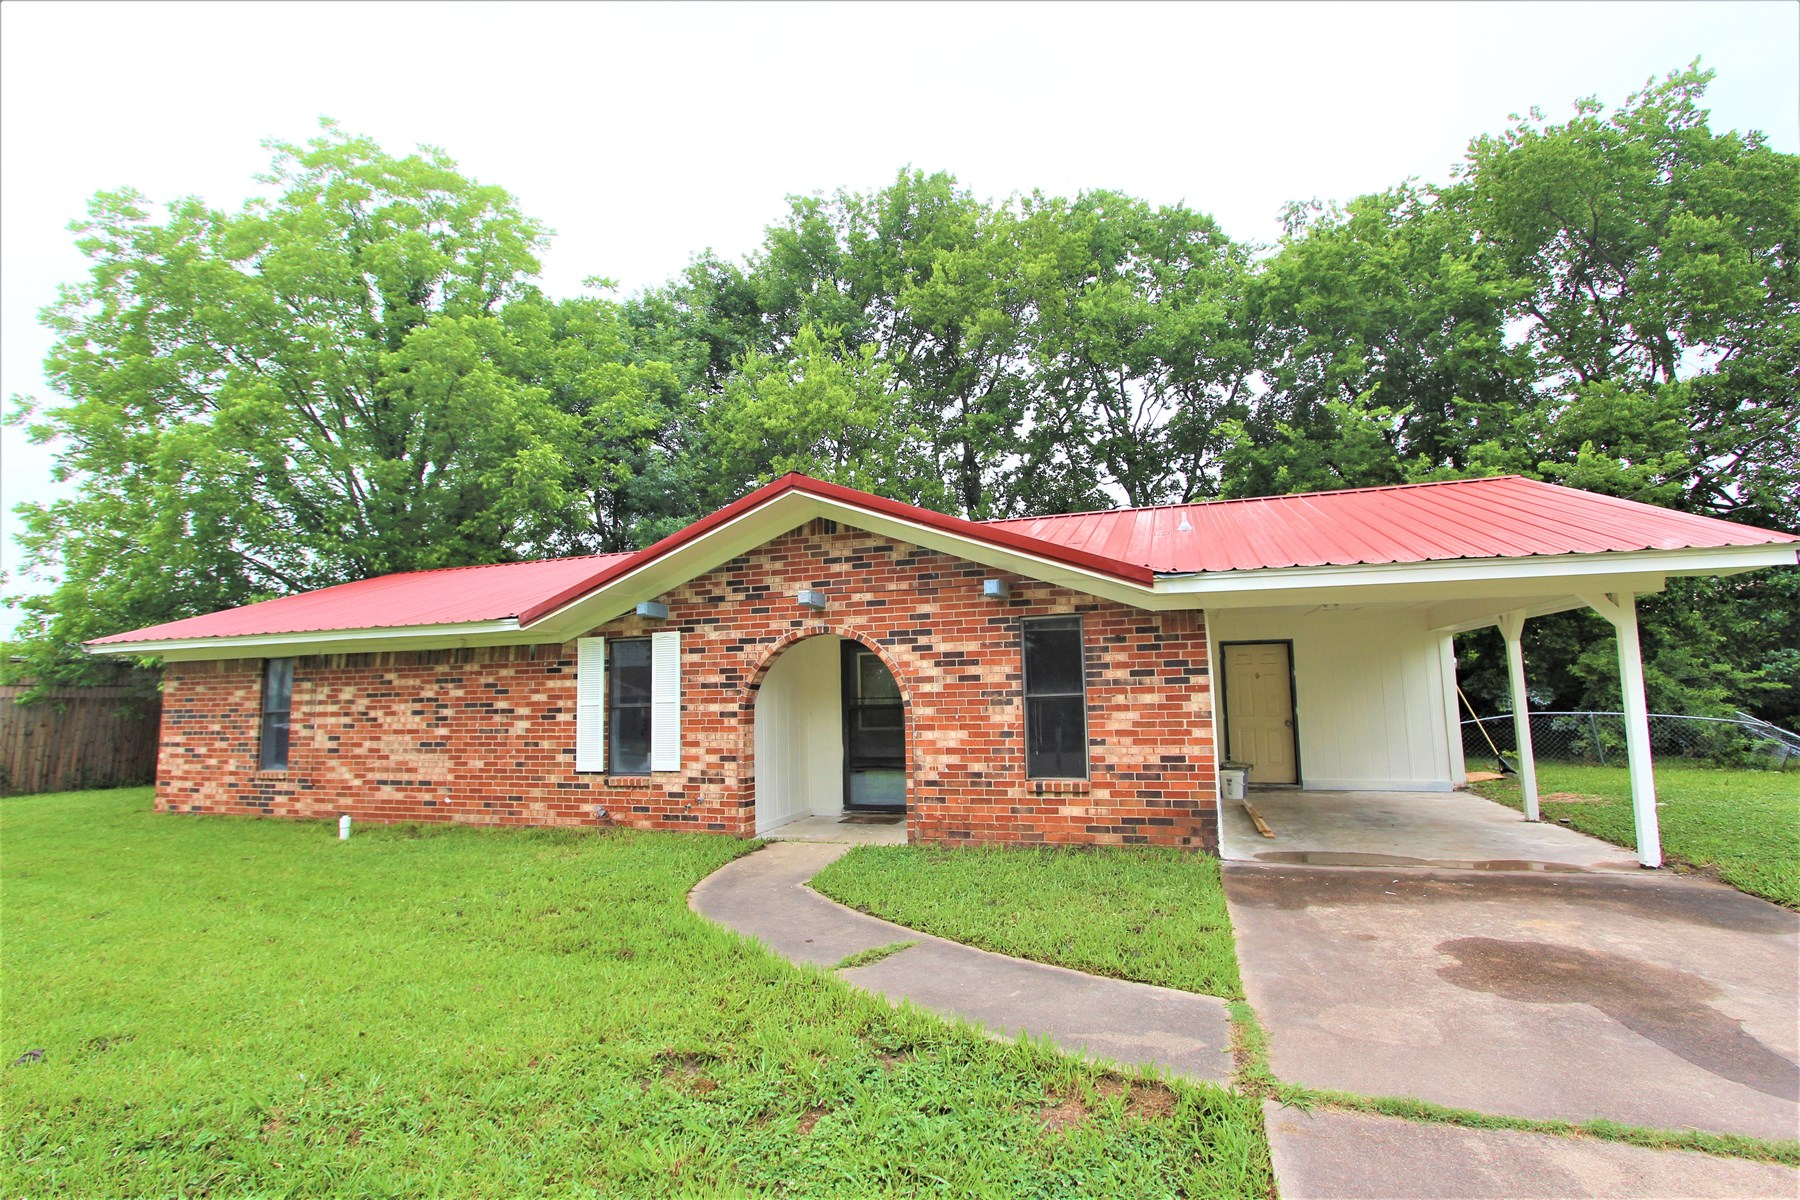 Home In Town Property For Sale Clarksville Texas